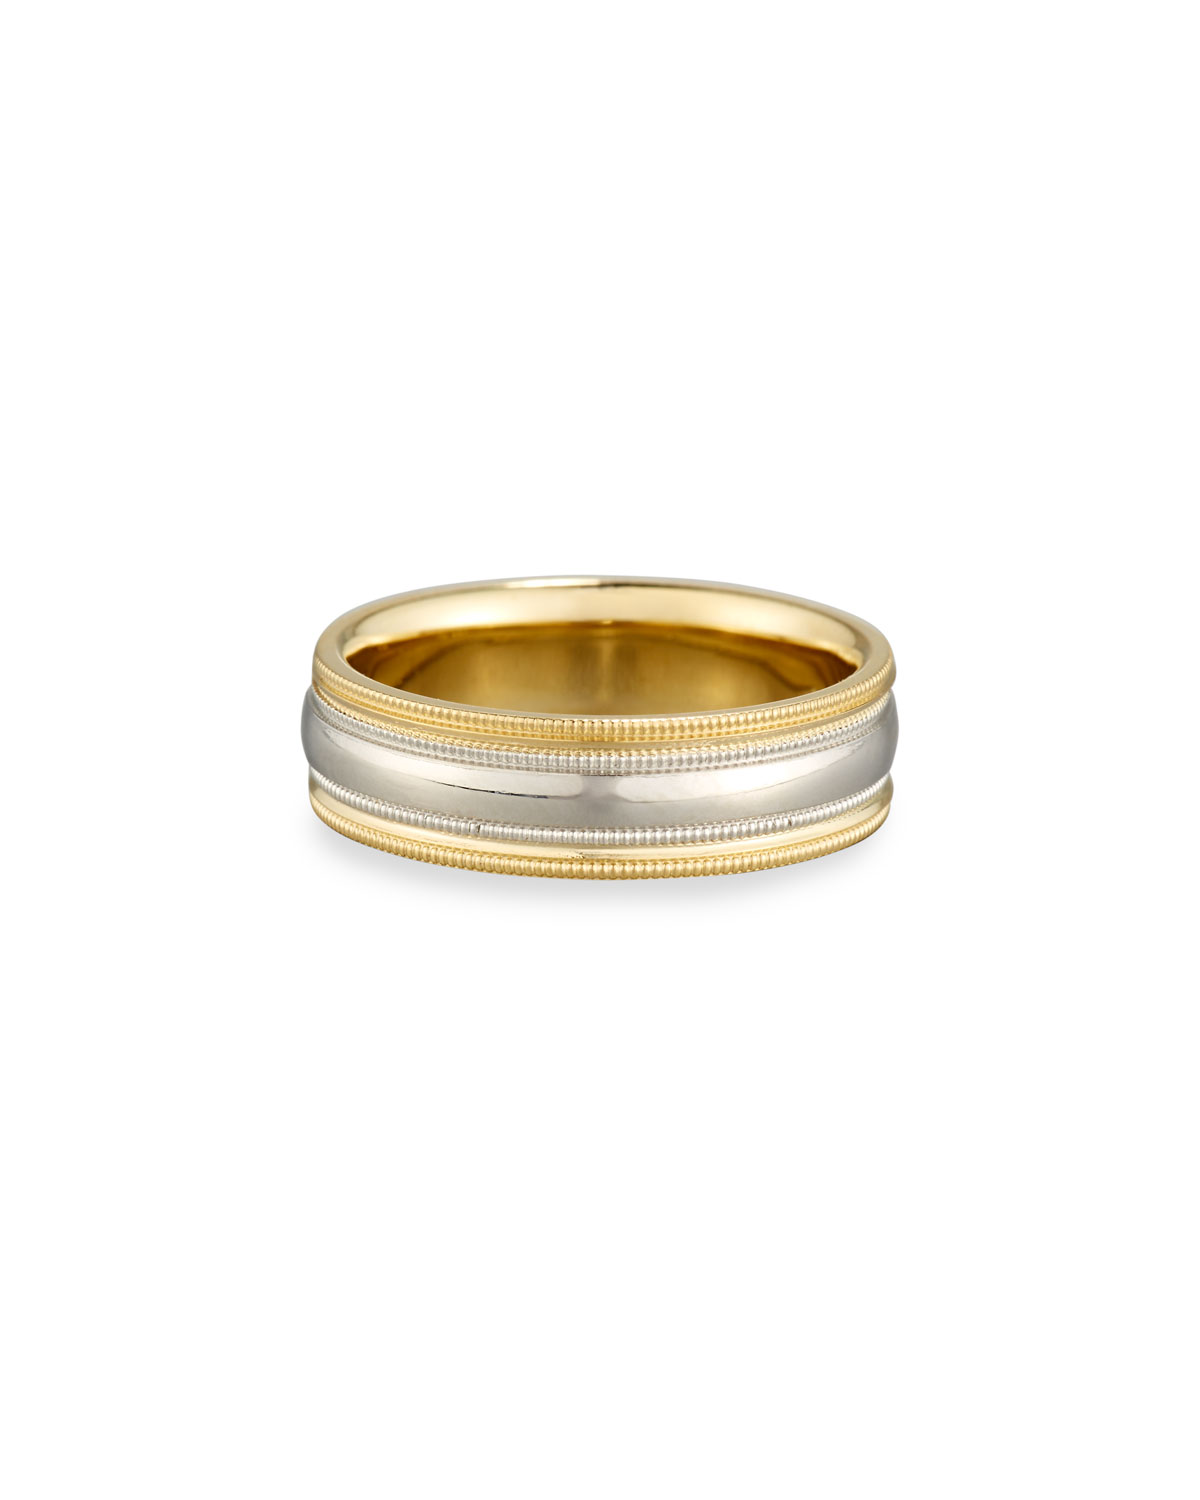 ELI GENTS SIMPLE WEDDING BAND RING IN PLATINUM & 18K GOLD, SIZE 10